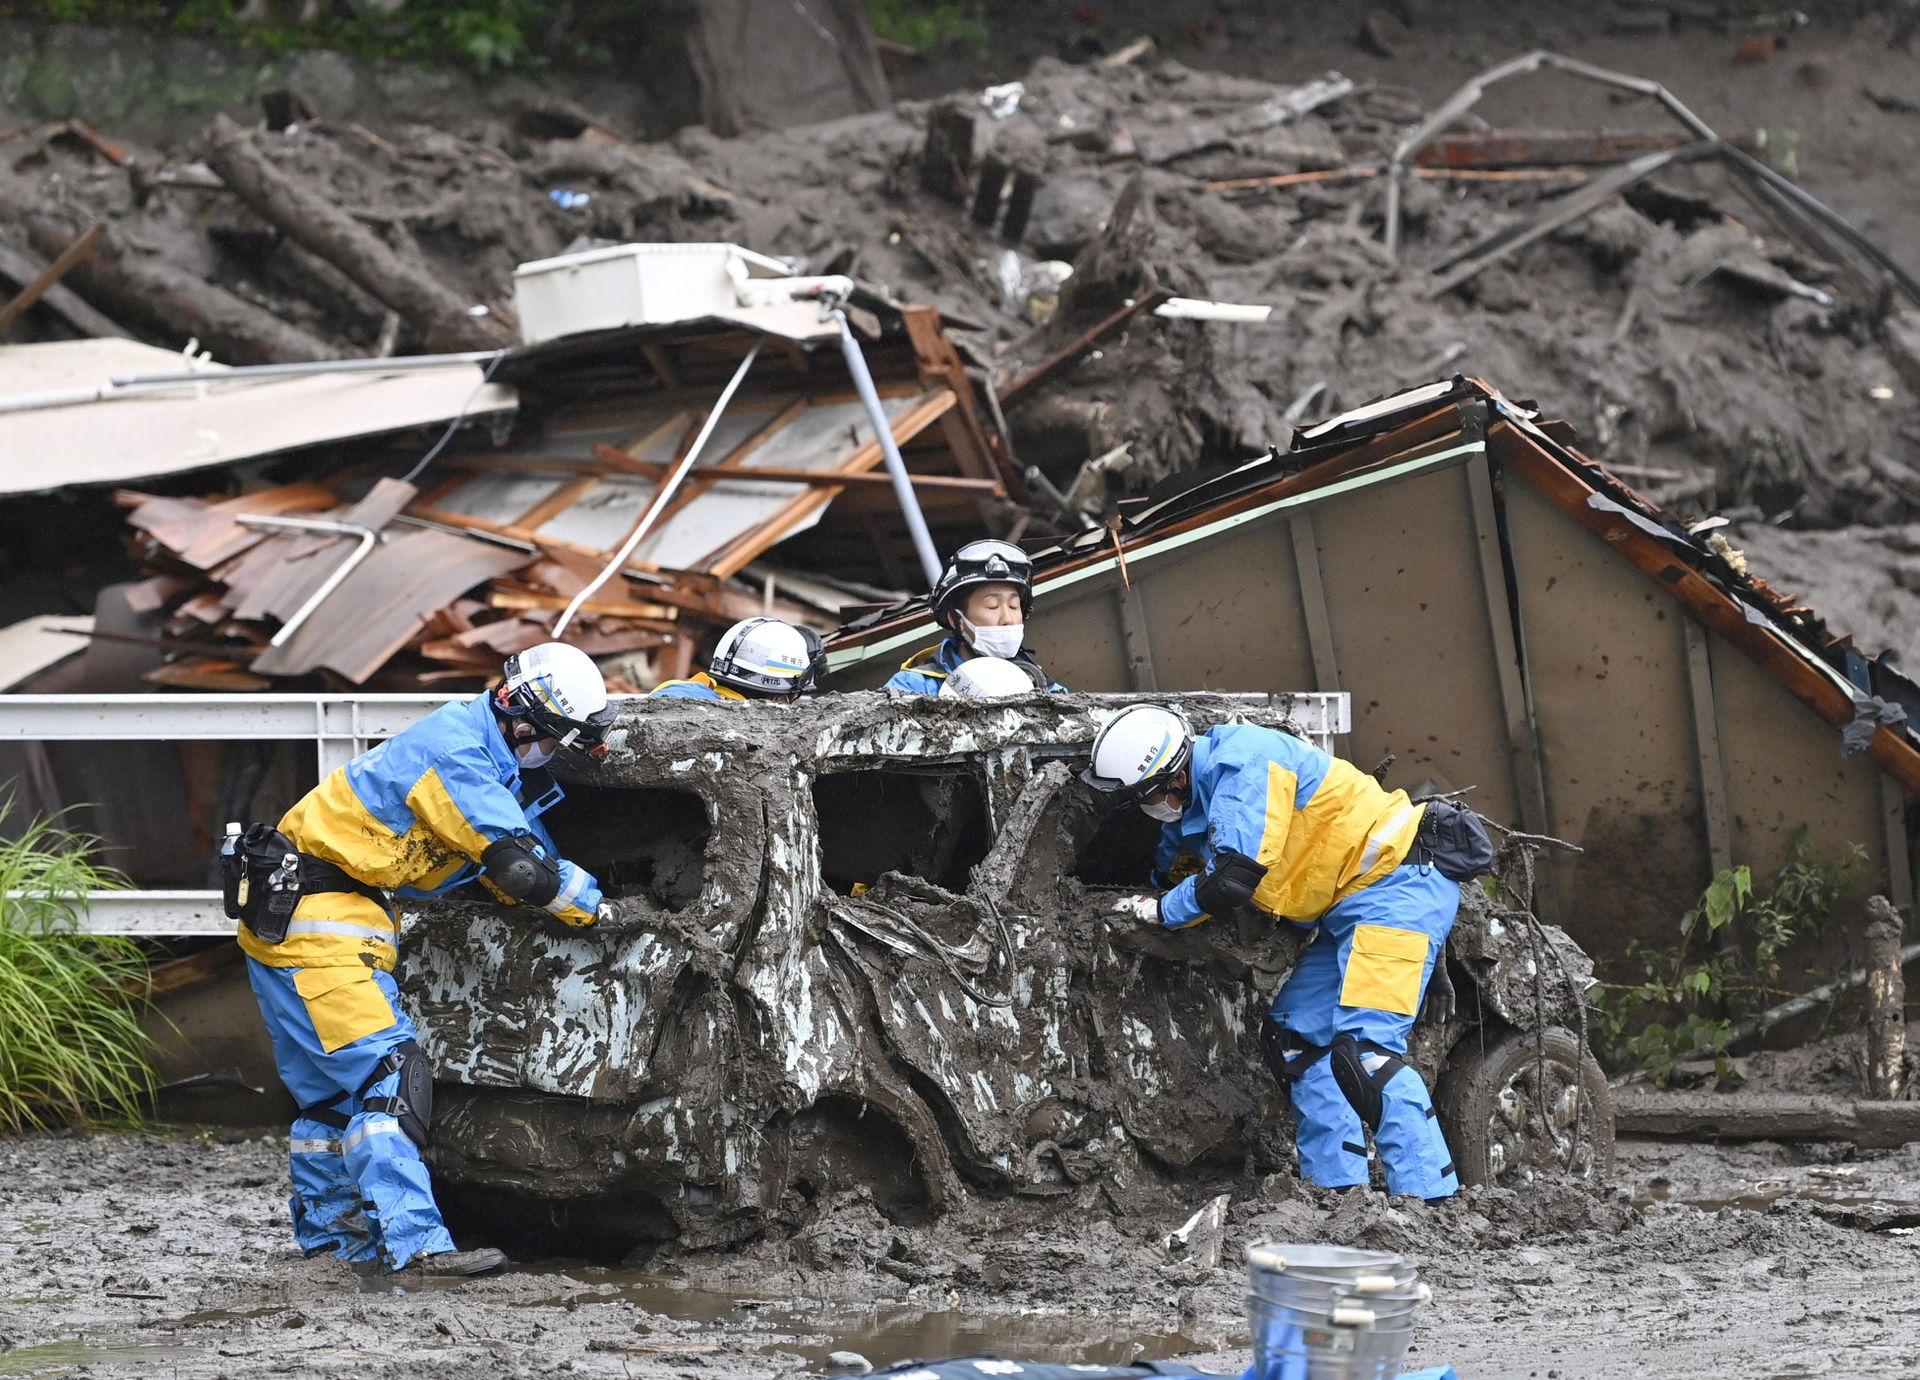 At Least 20 People Missing and Two Dead After Mudslide Wipes Out Homes in Japan's City of Atami